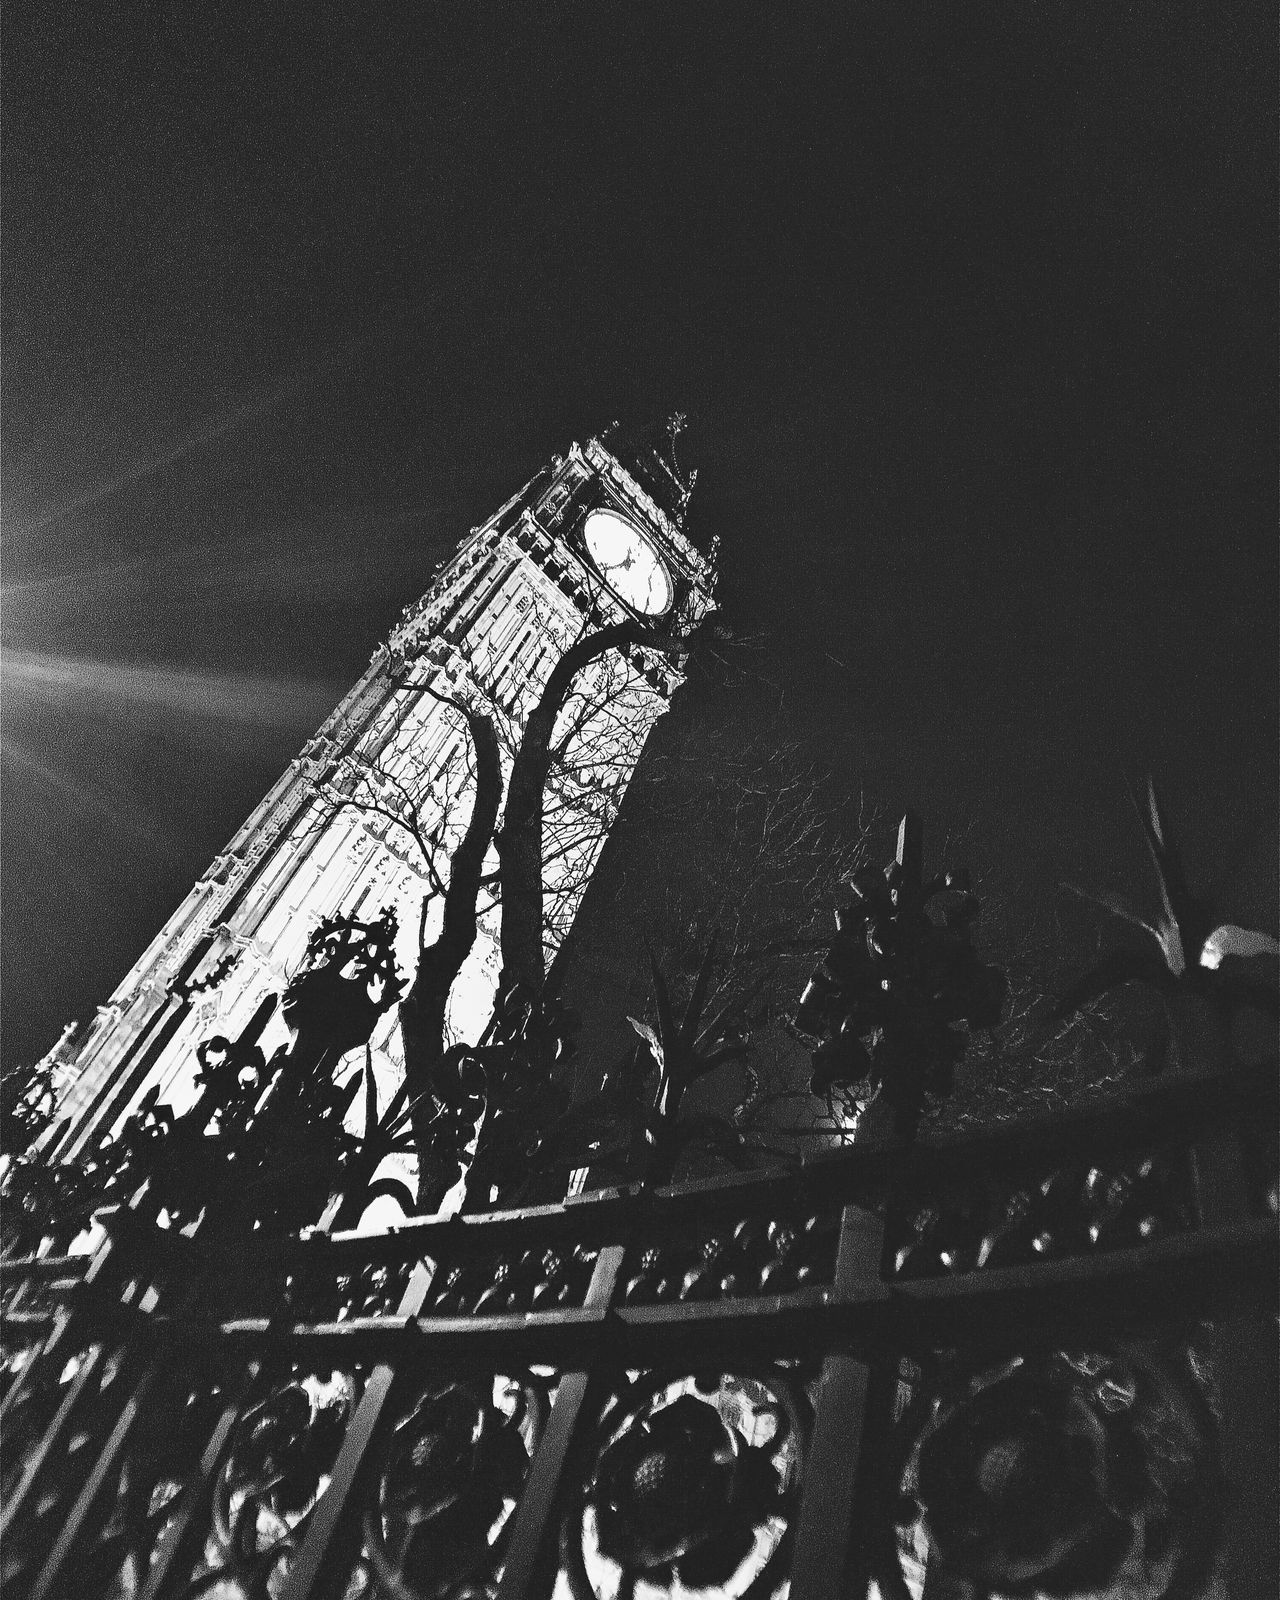 Architecture Big Ben Built Structure Clock Clock Tower Fence London Low Angle View Night No People Outdoors Parliament Sky Structure Time Tree Westminster